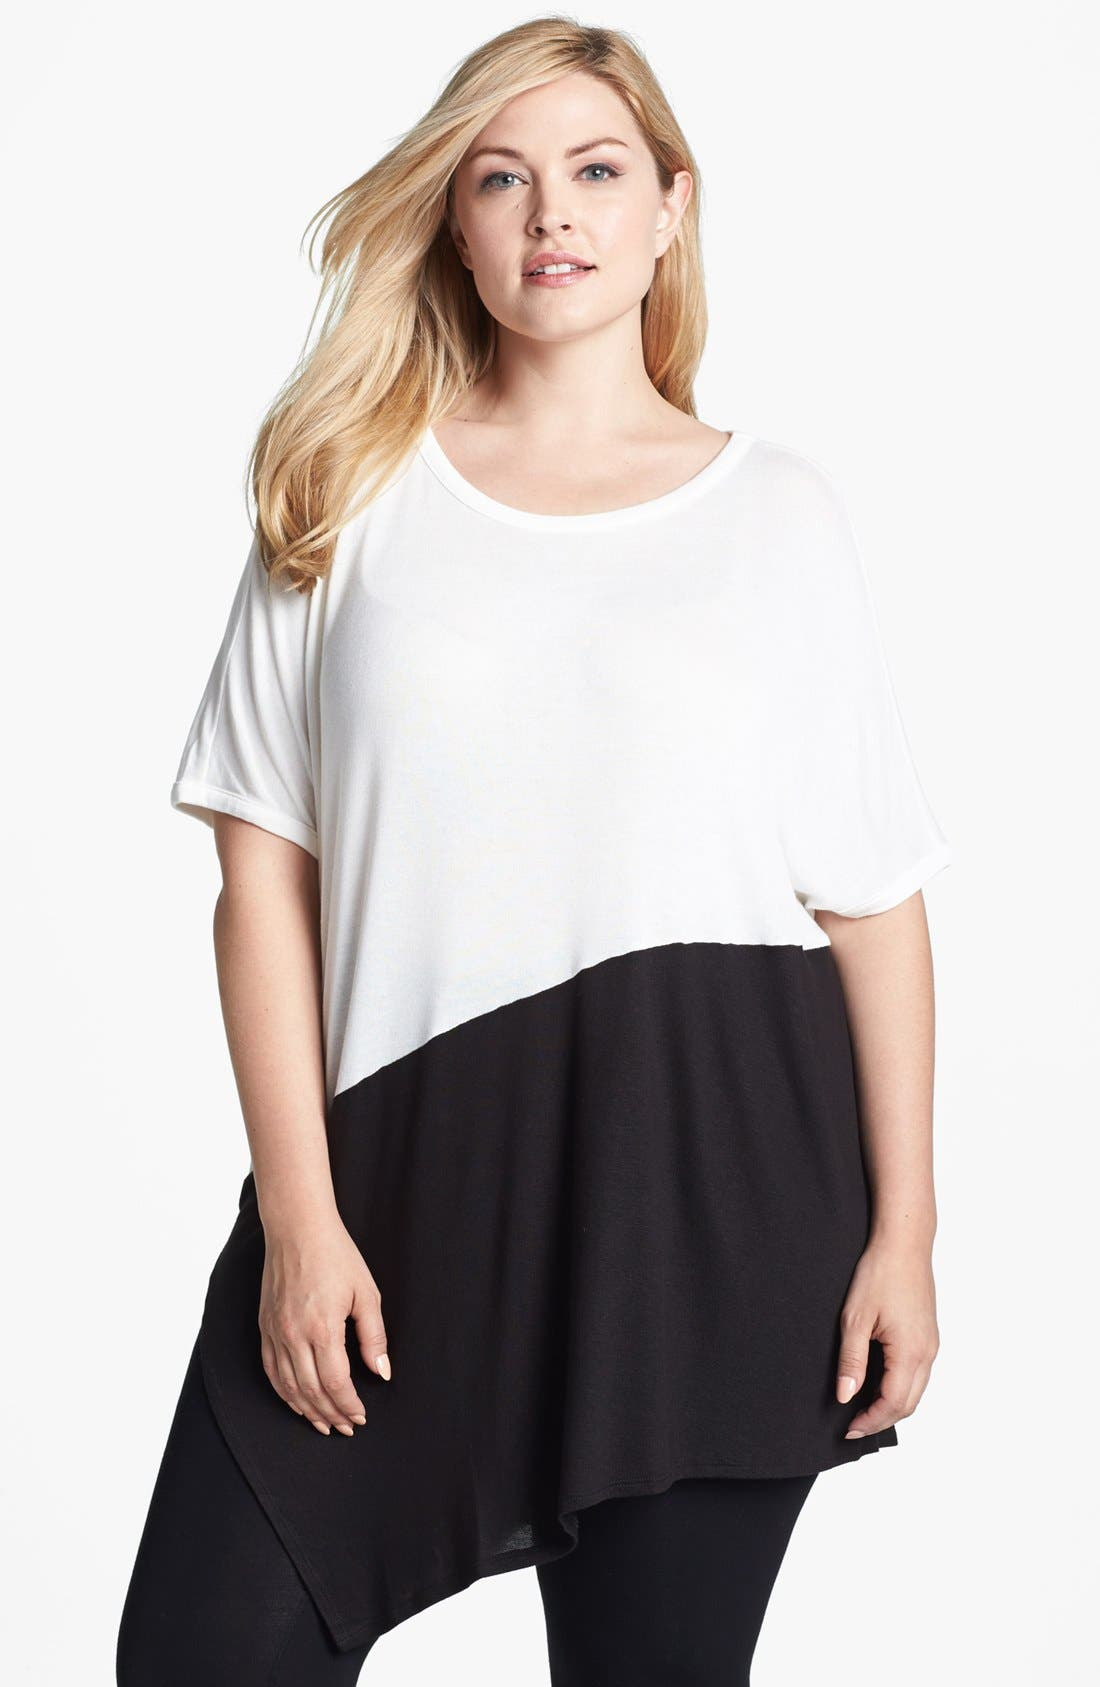 Alternate Image 1 Selected - Three Dots Asymmetrical Colorblock Top (Plus Size)